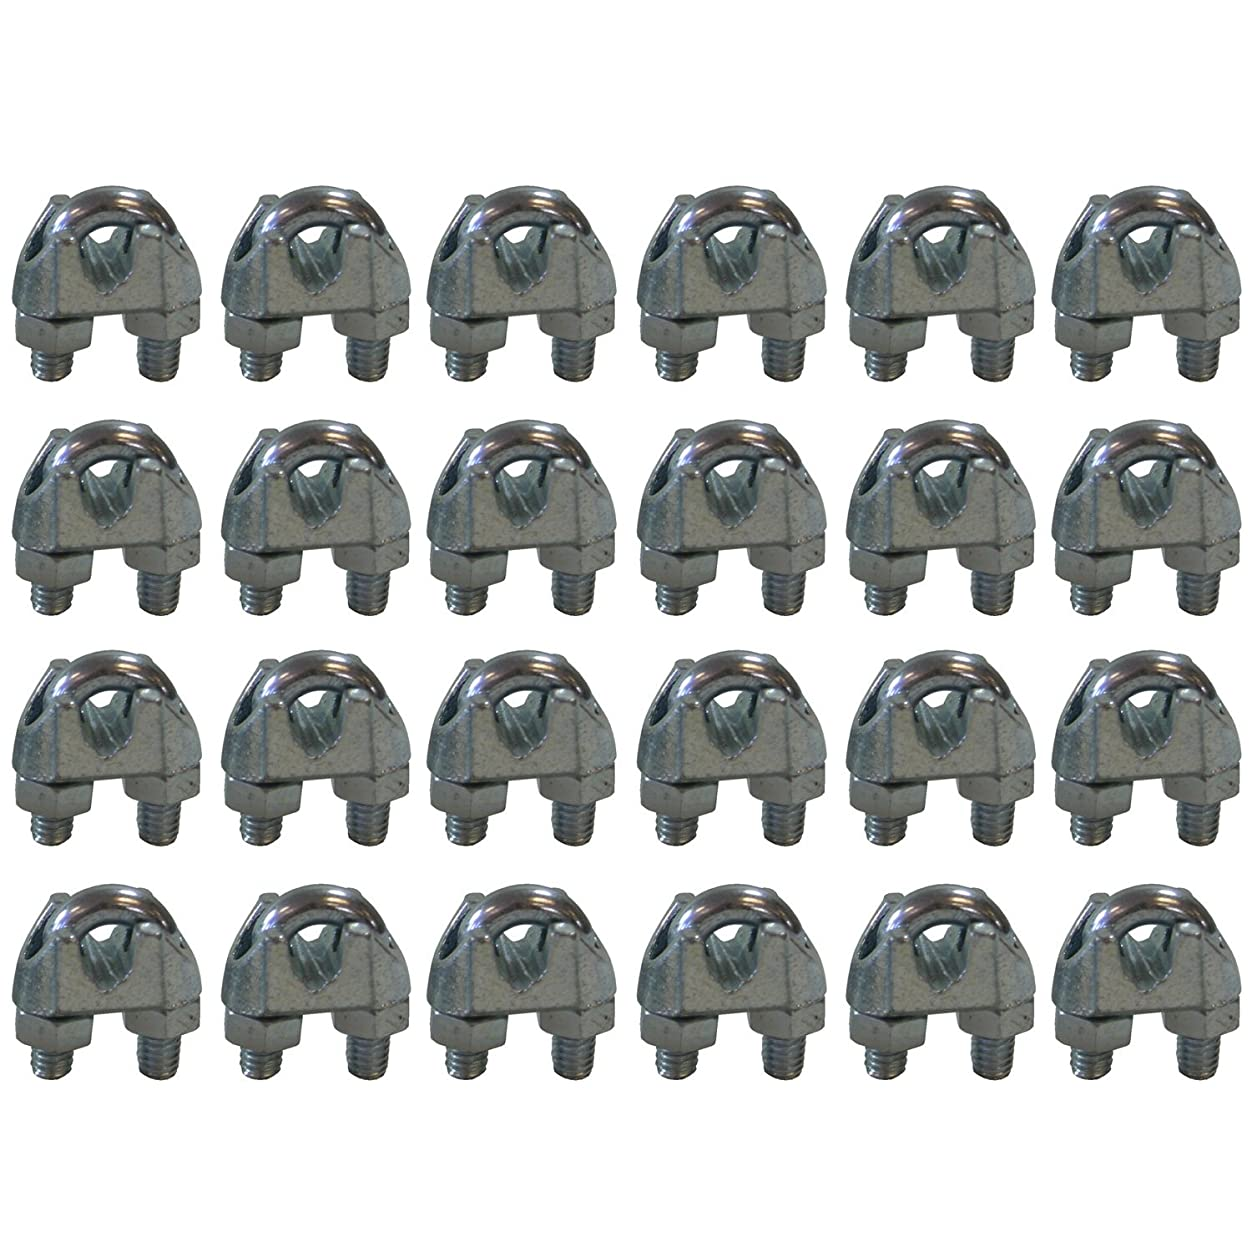 West Coast Wire Rope CPML014 Galvanized Steel 1/4-inch Cable Clamp Clip, 24-Pack vcev813278402